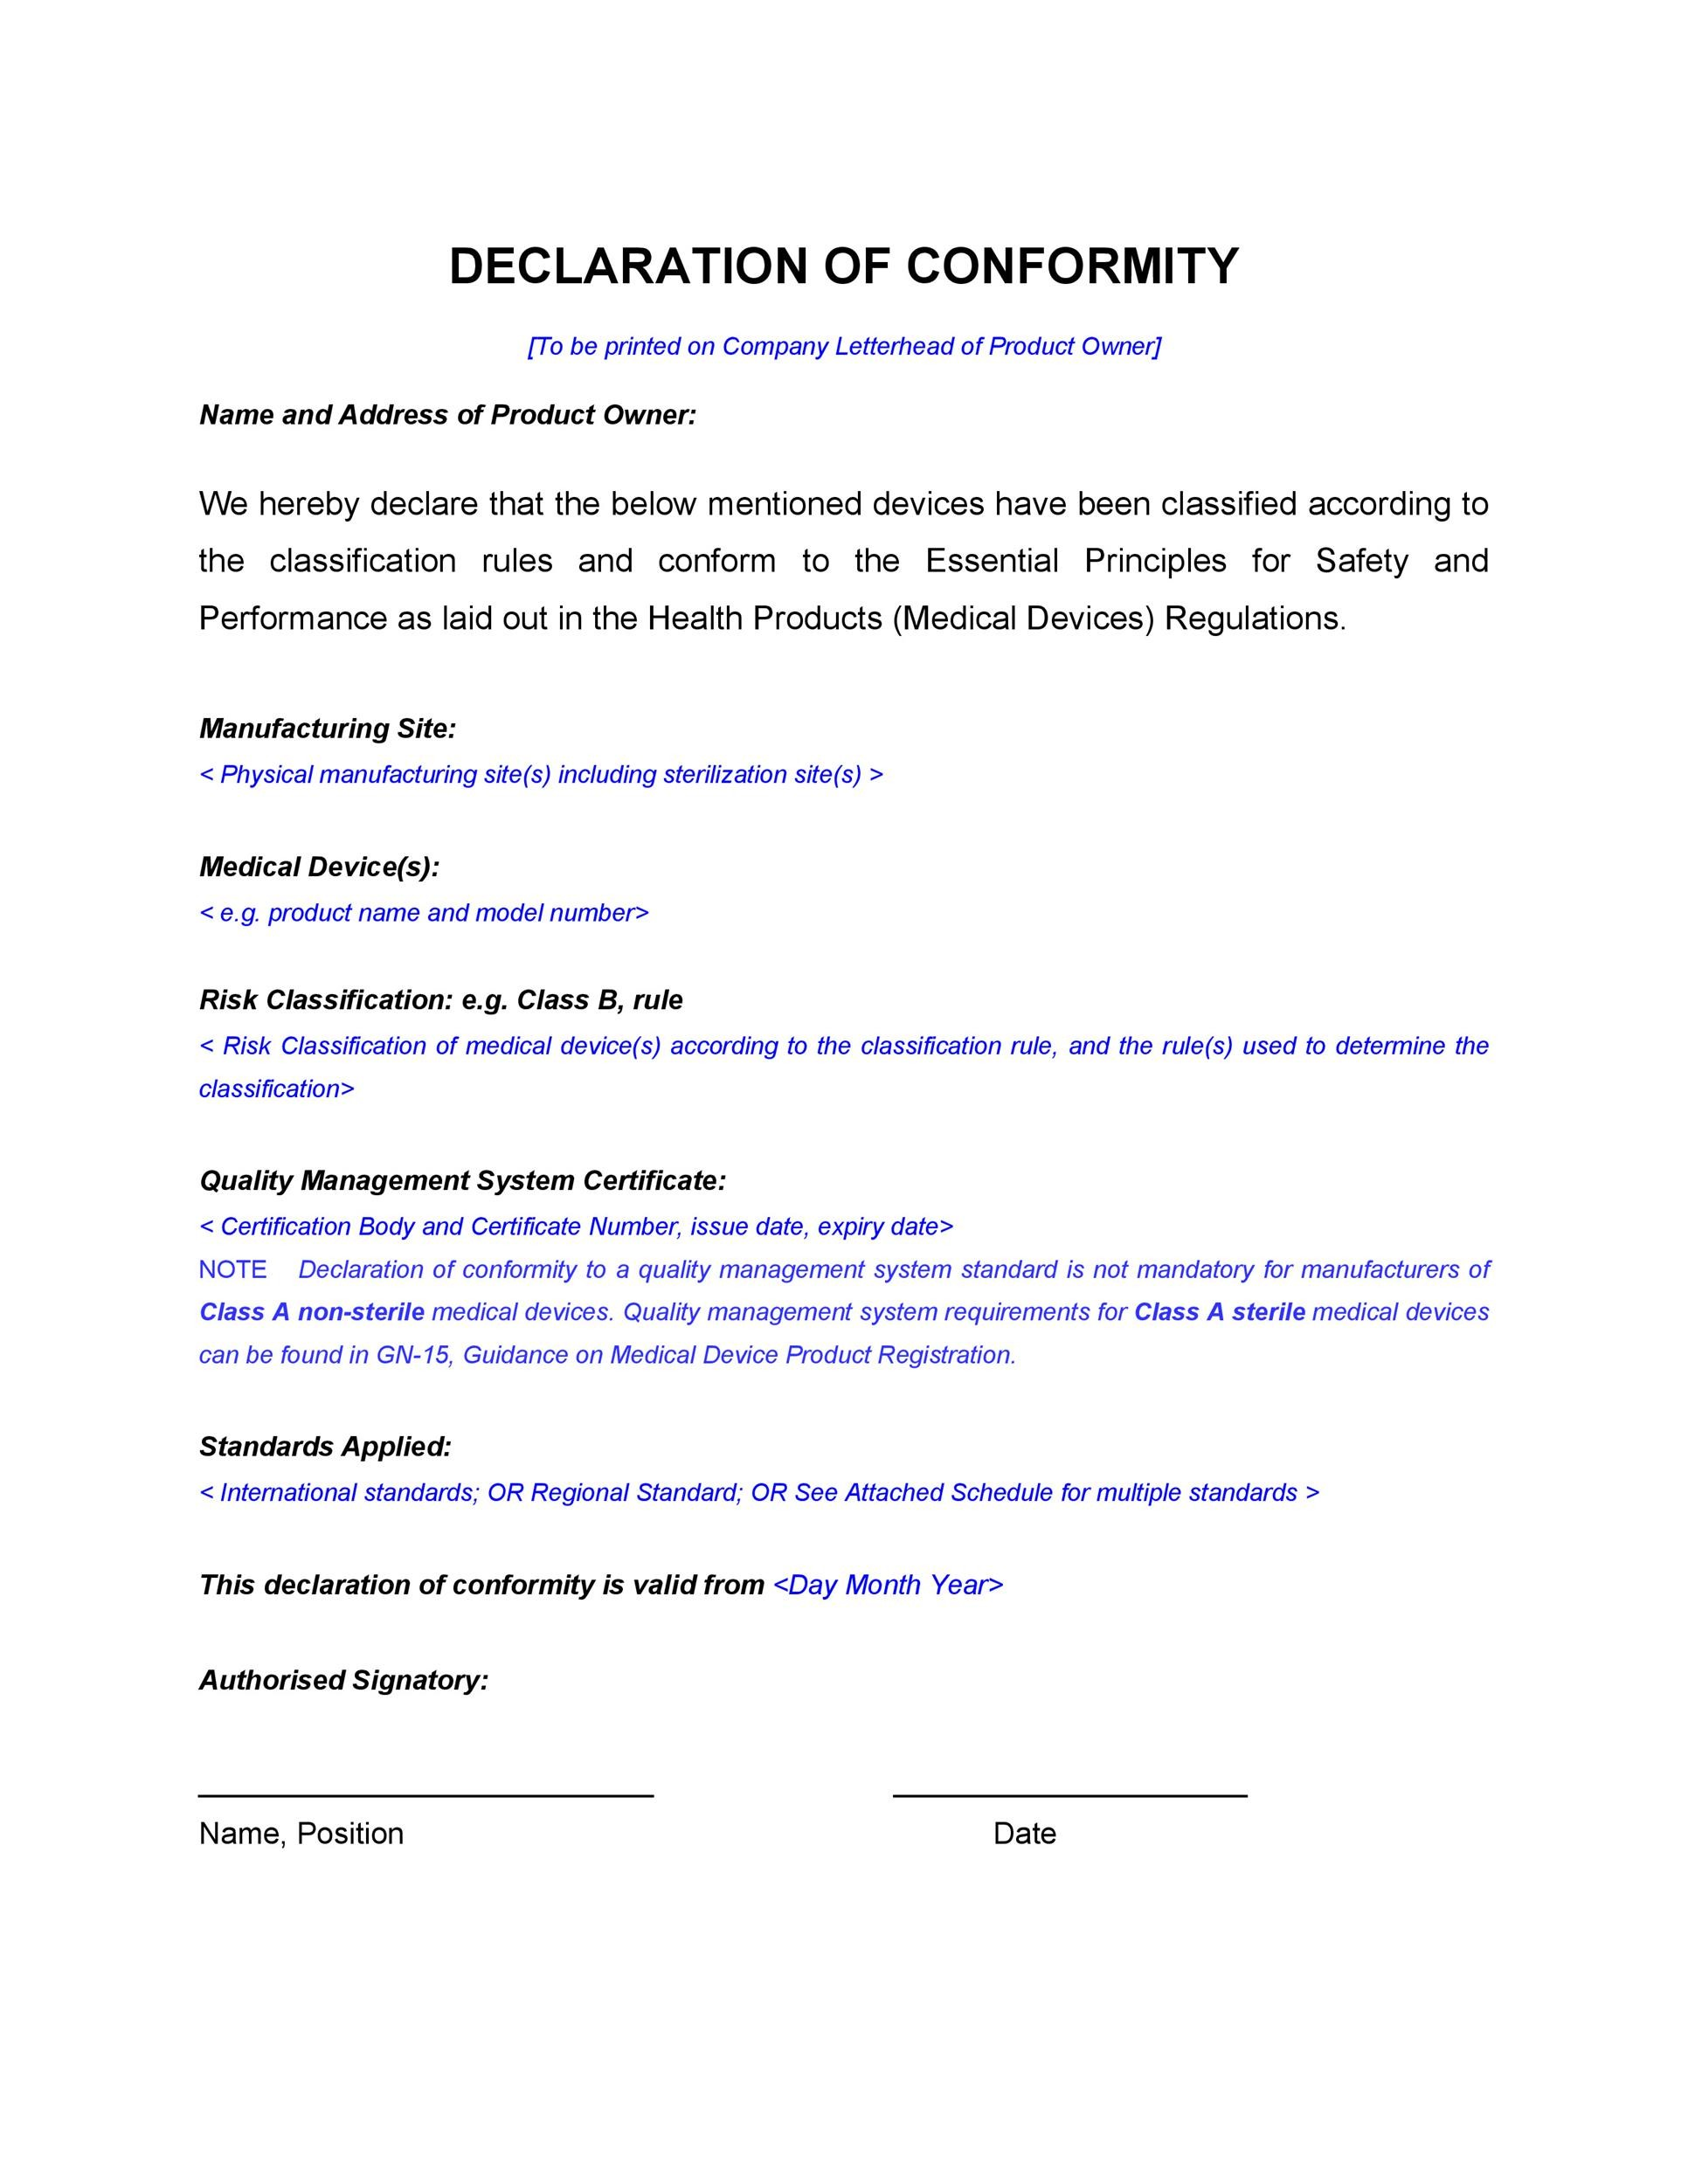 40 Free Certificate of Conformance Templates & Forms - Template Lab